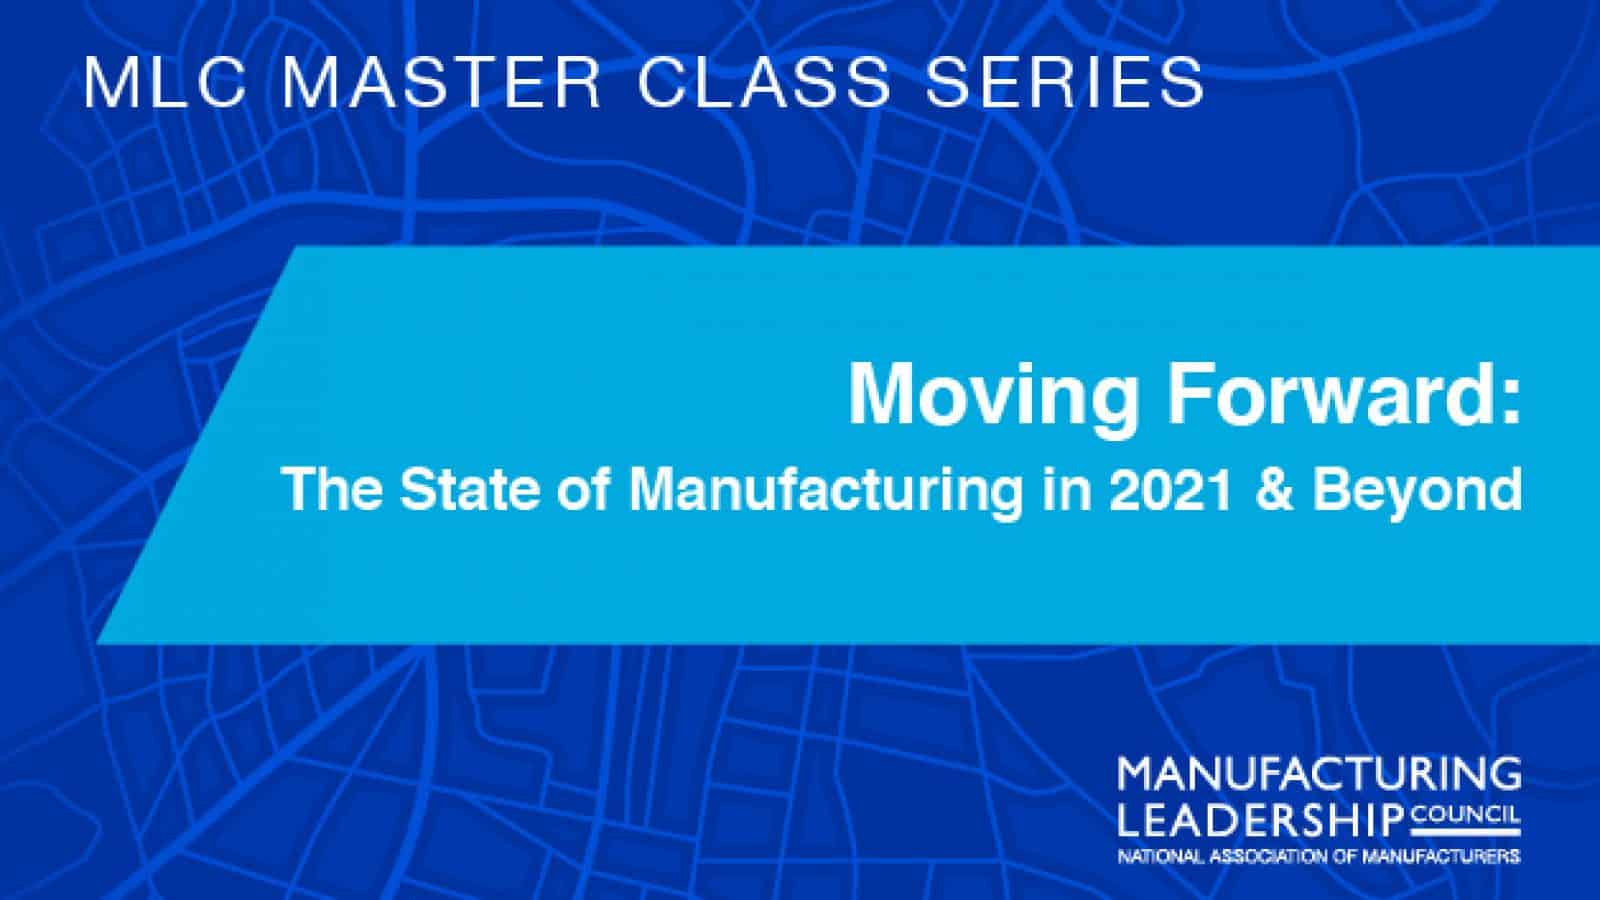 Moving Forward: The State of Manufacturing in 2021 & Beyond